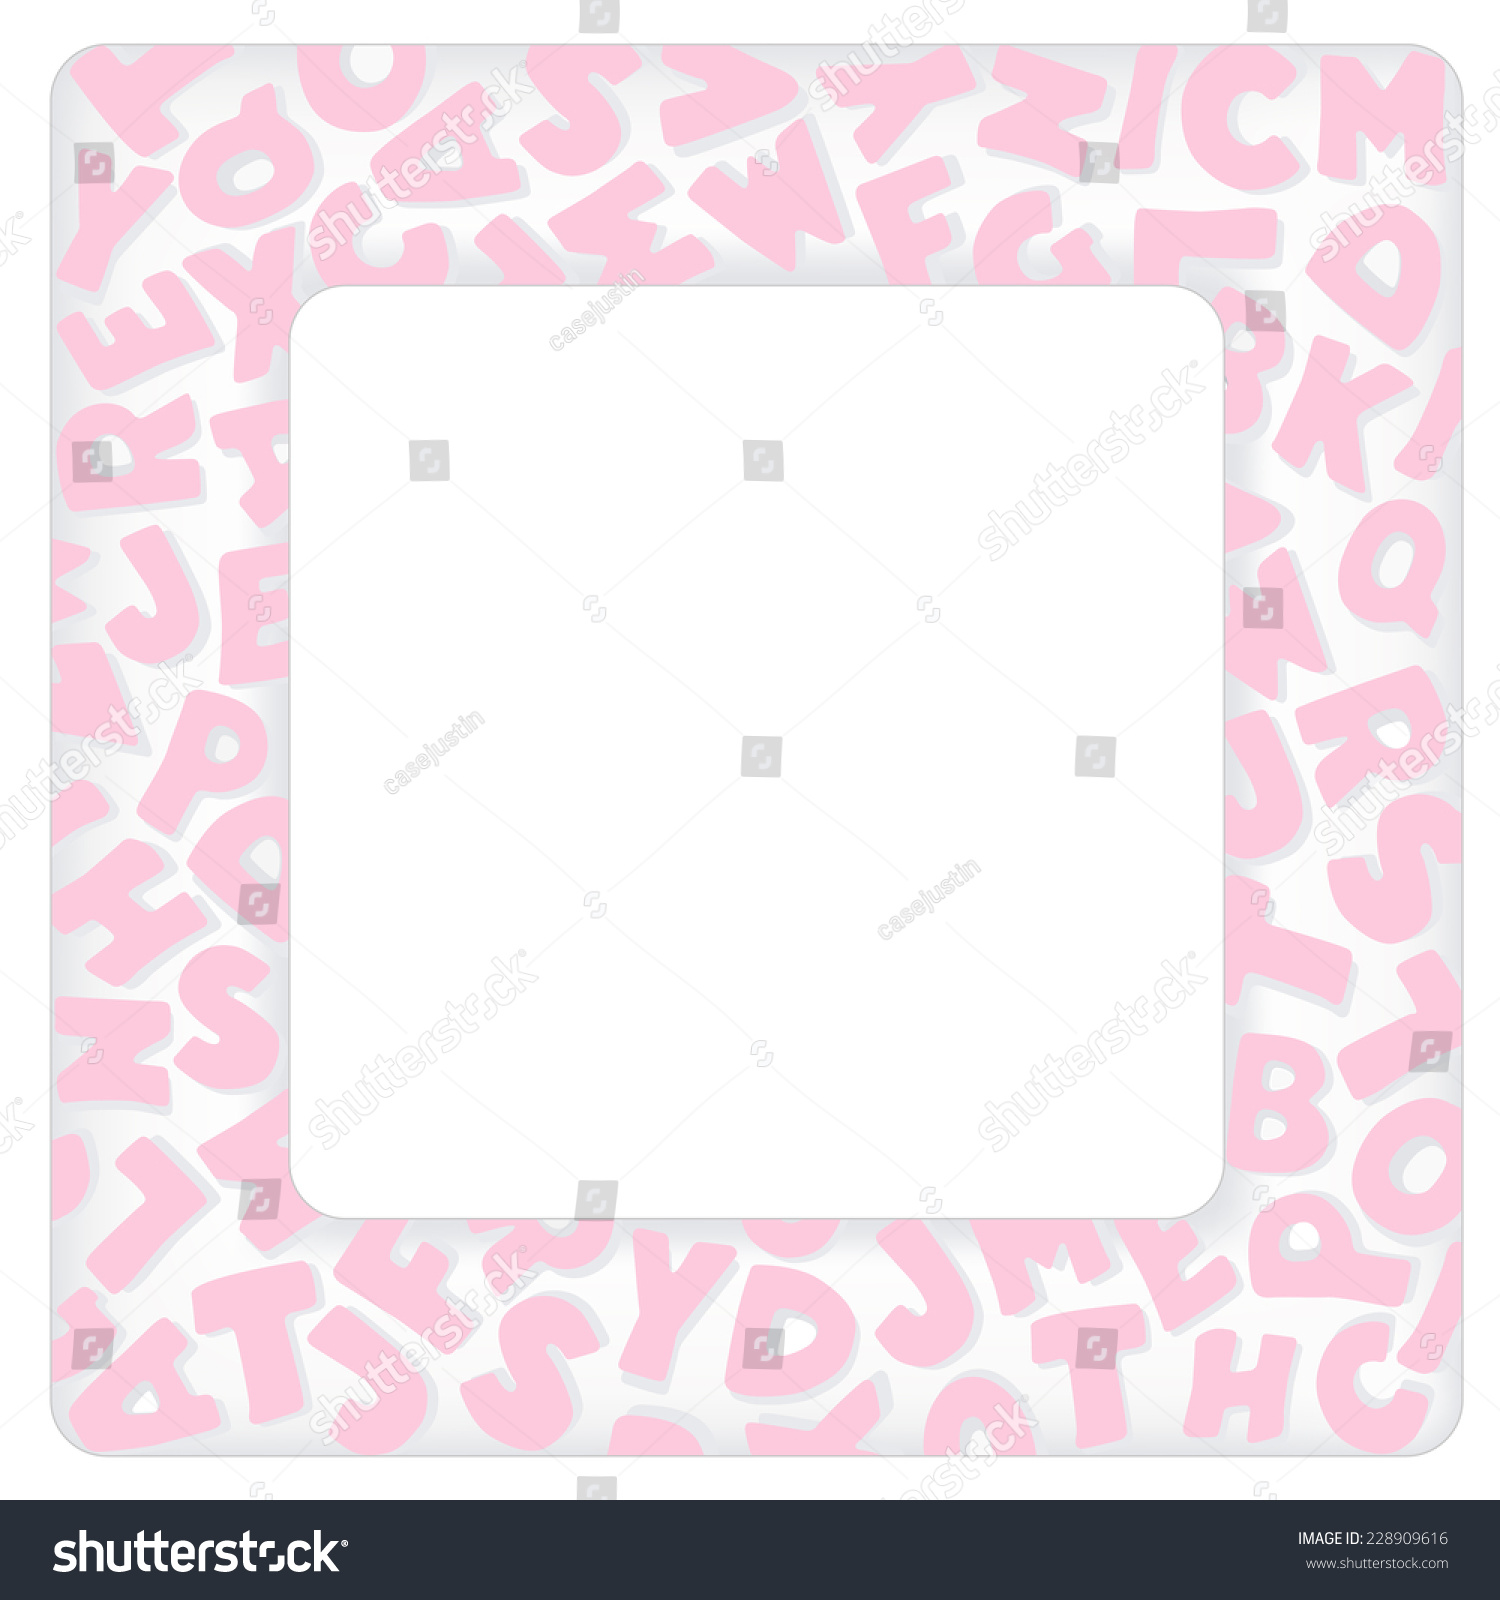 Alphabet frame square pastel pink letter vectores en stock 228909616 alphabet frame square pastel pink letter border with copy space for baby books albums solutioingenieria Images